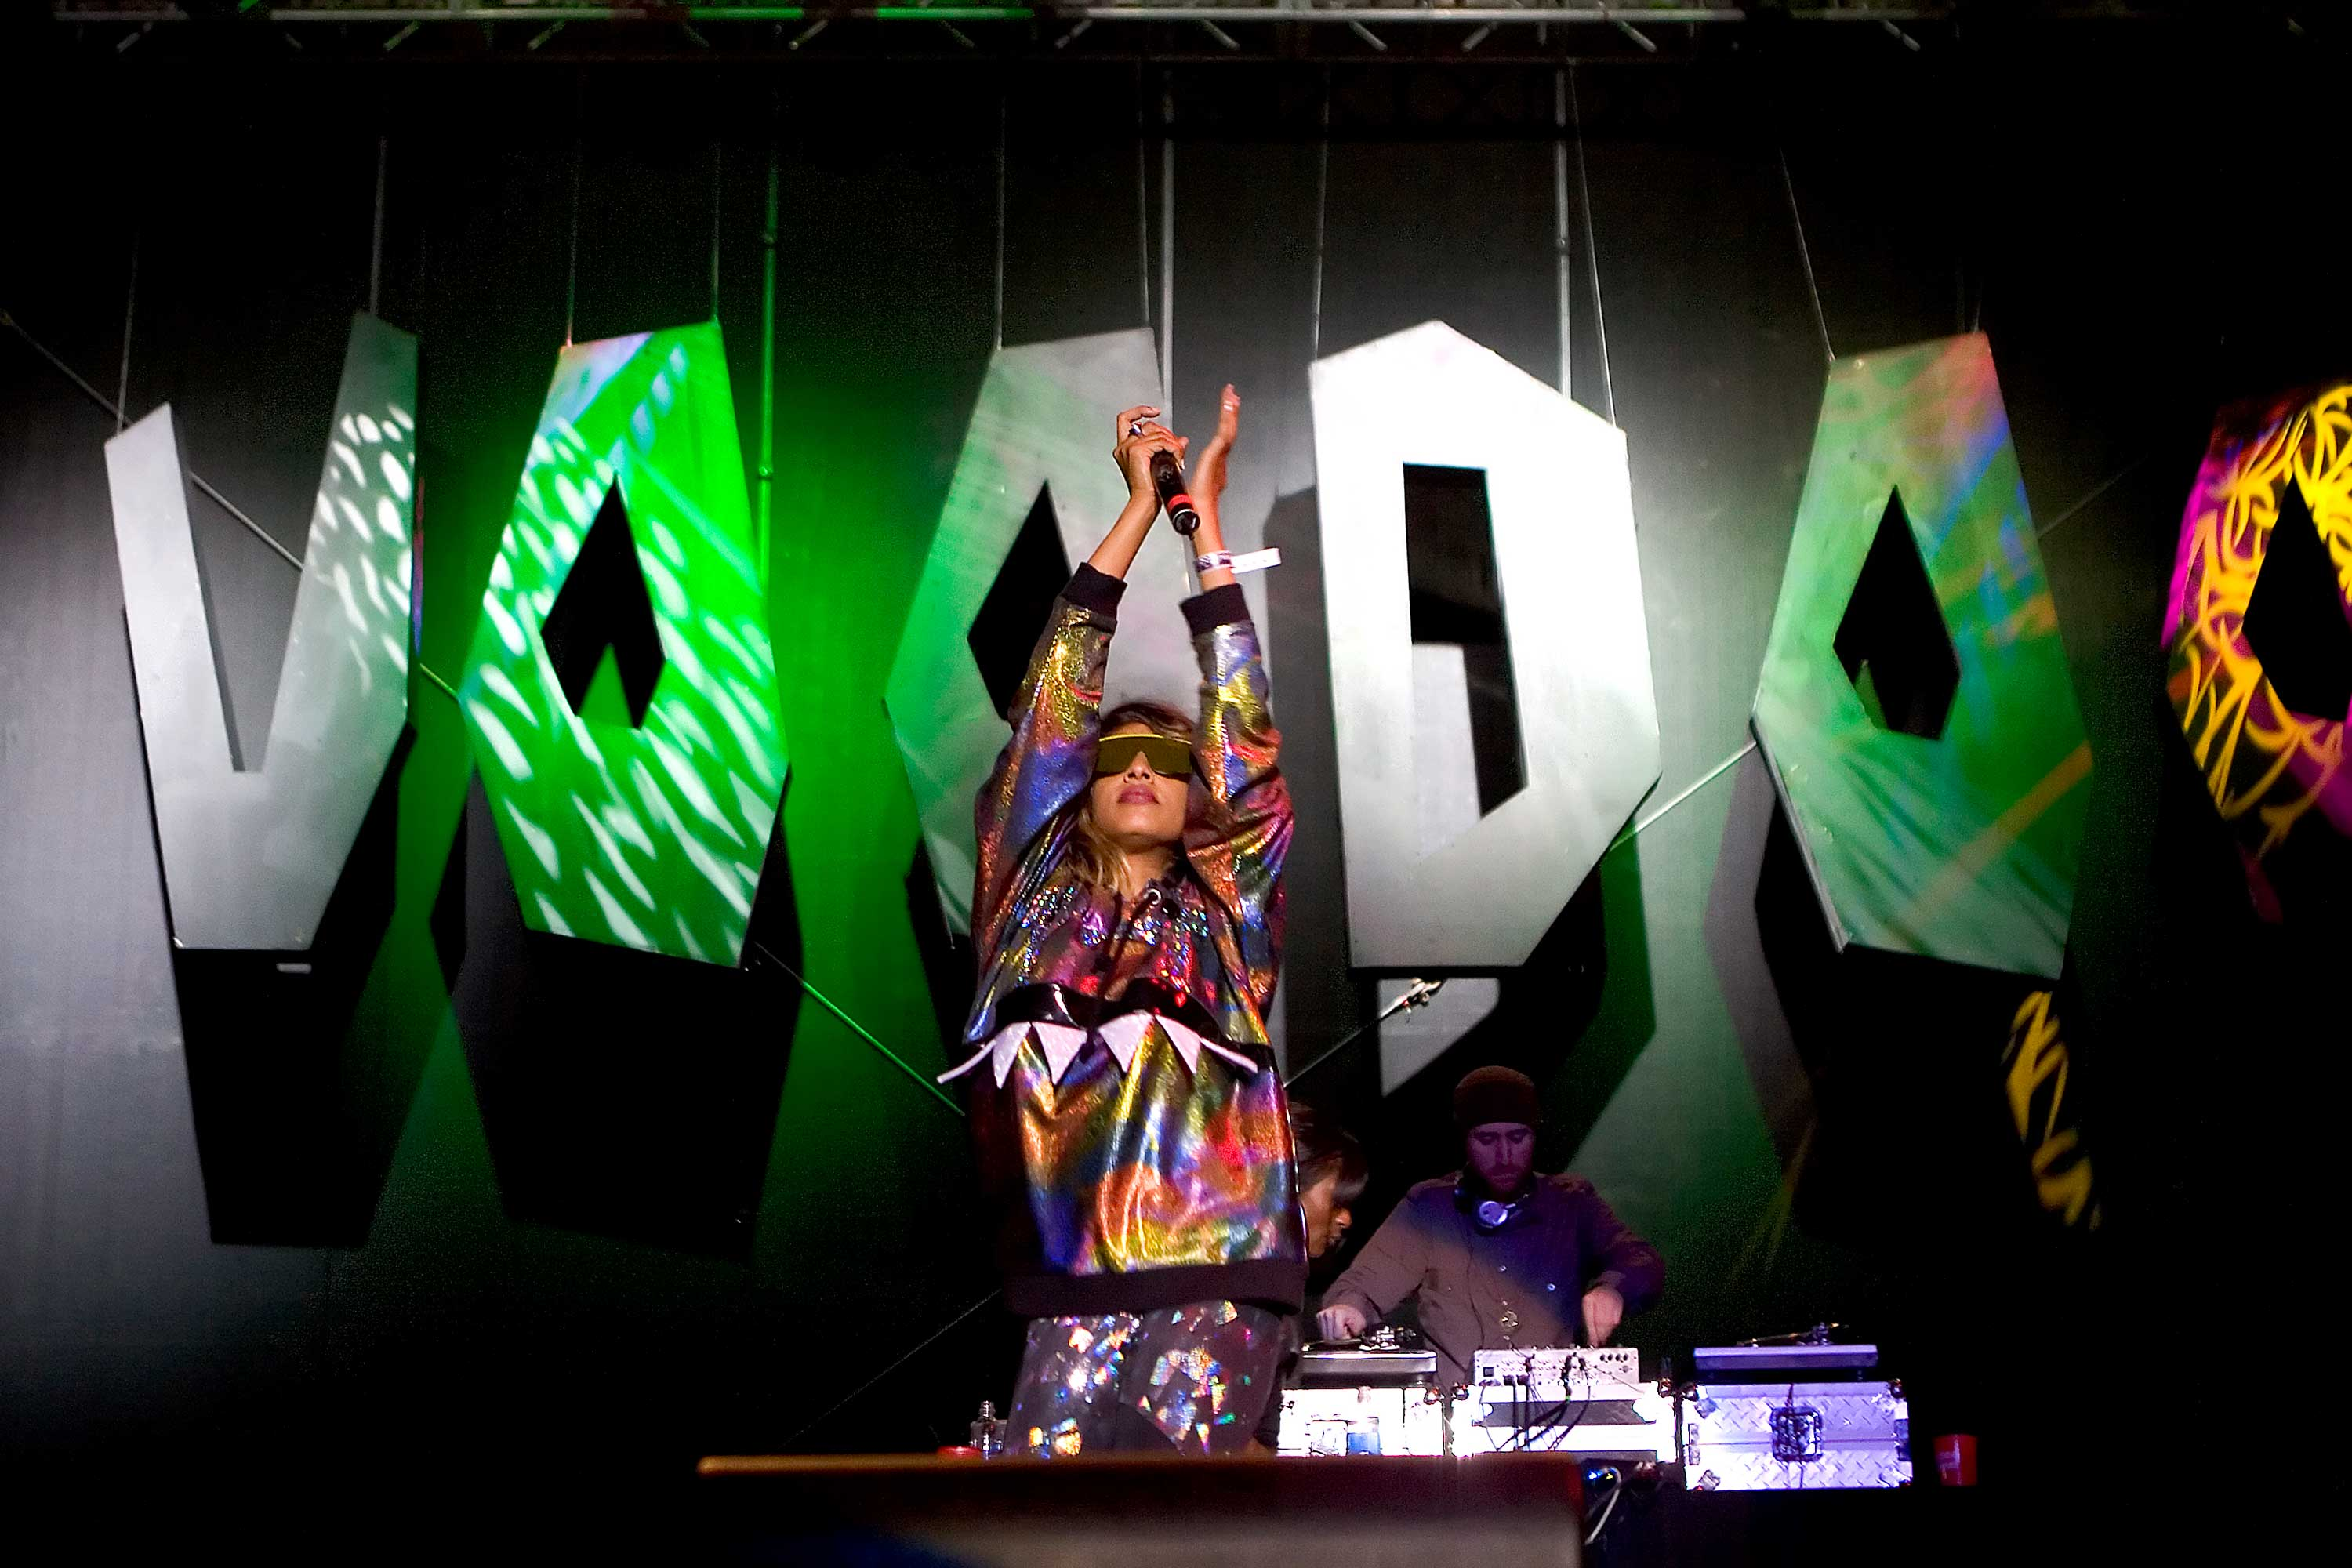 M.I.A. performs at Voodoo 2007. (Nicholastbroussard)